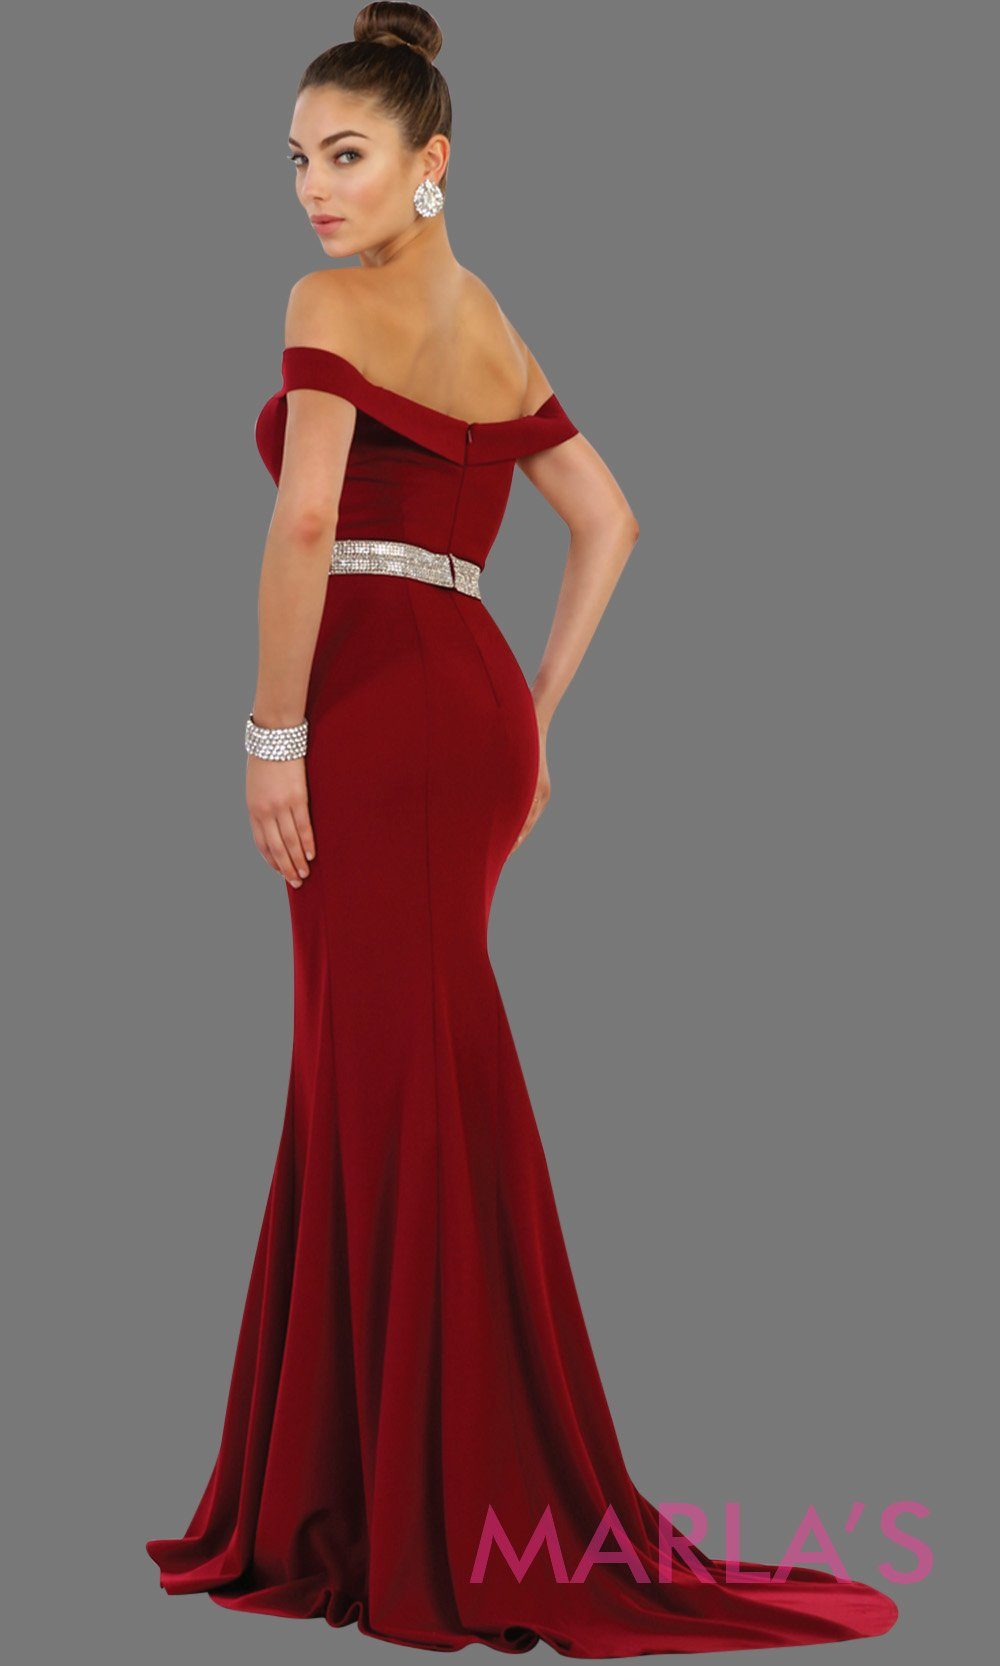 Back of Long fitted burgundy off shoulder party dress with rhinestone belt. Perfect for dark red bridesmaid dresses, prom, wedding guest dress, pink formal party gown, sleek and sexy party gown. Available in Plus Sizes.